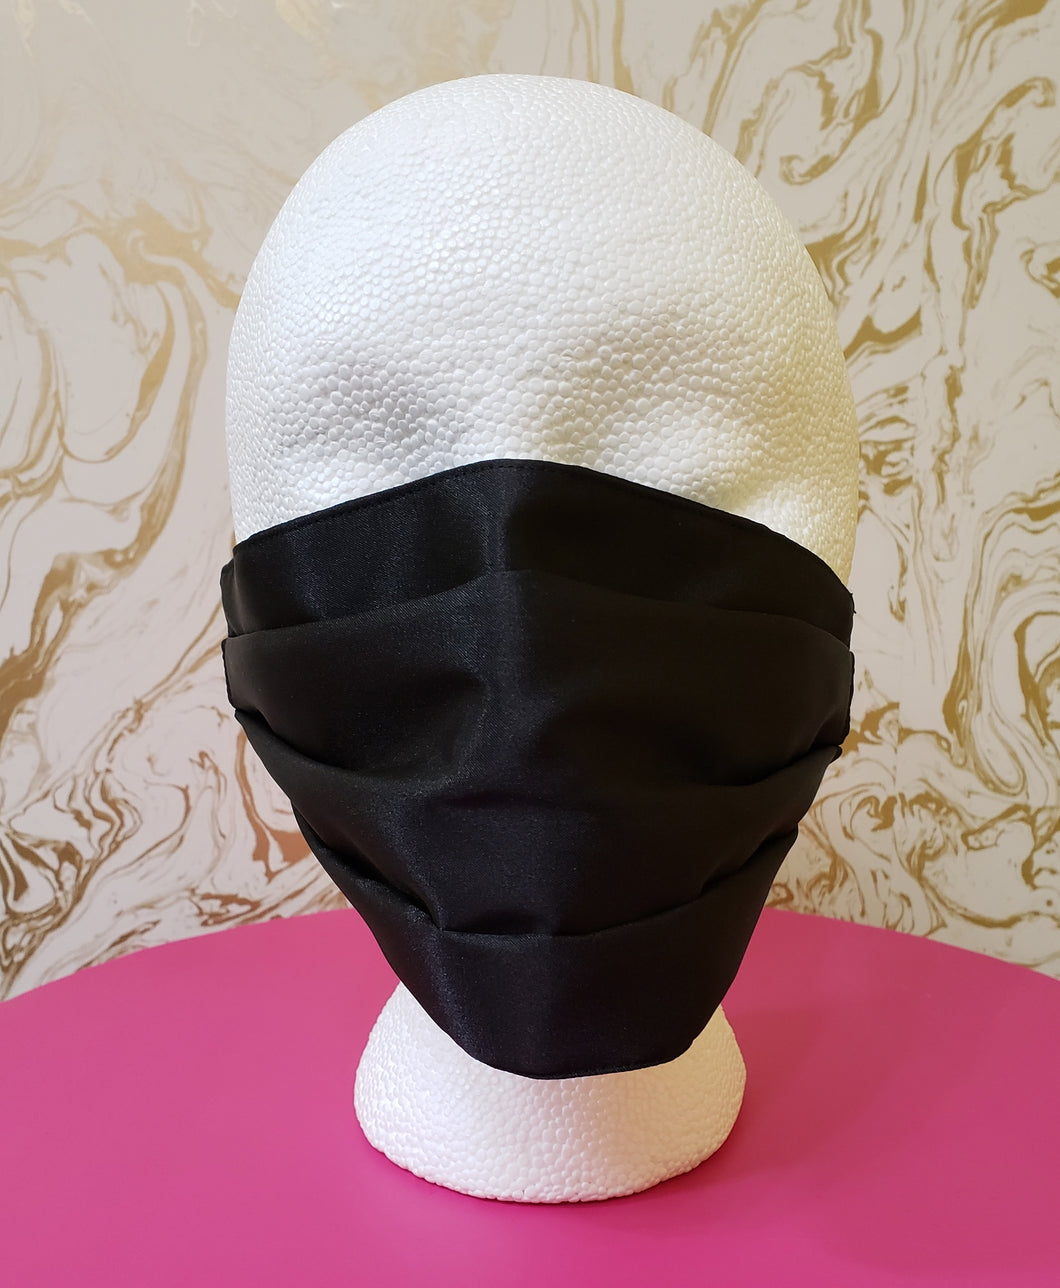 Satin Black Reversible Couture Fashion Filtered Face Mask - 3 Layers with Built in Filter - Kids